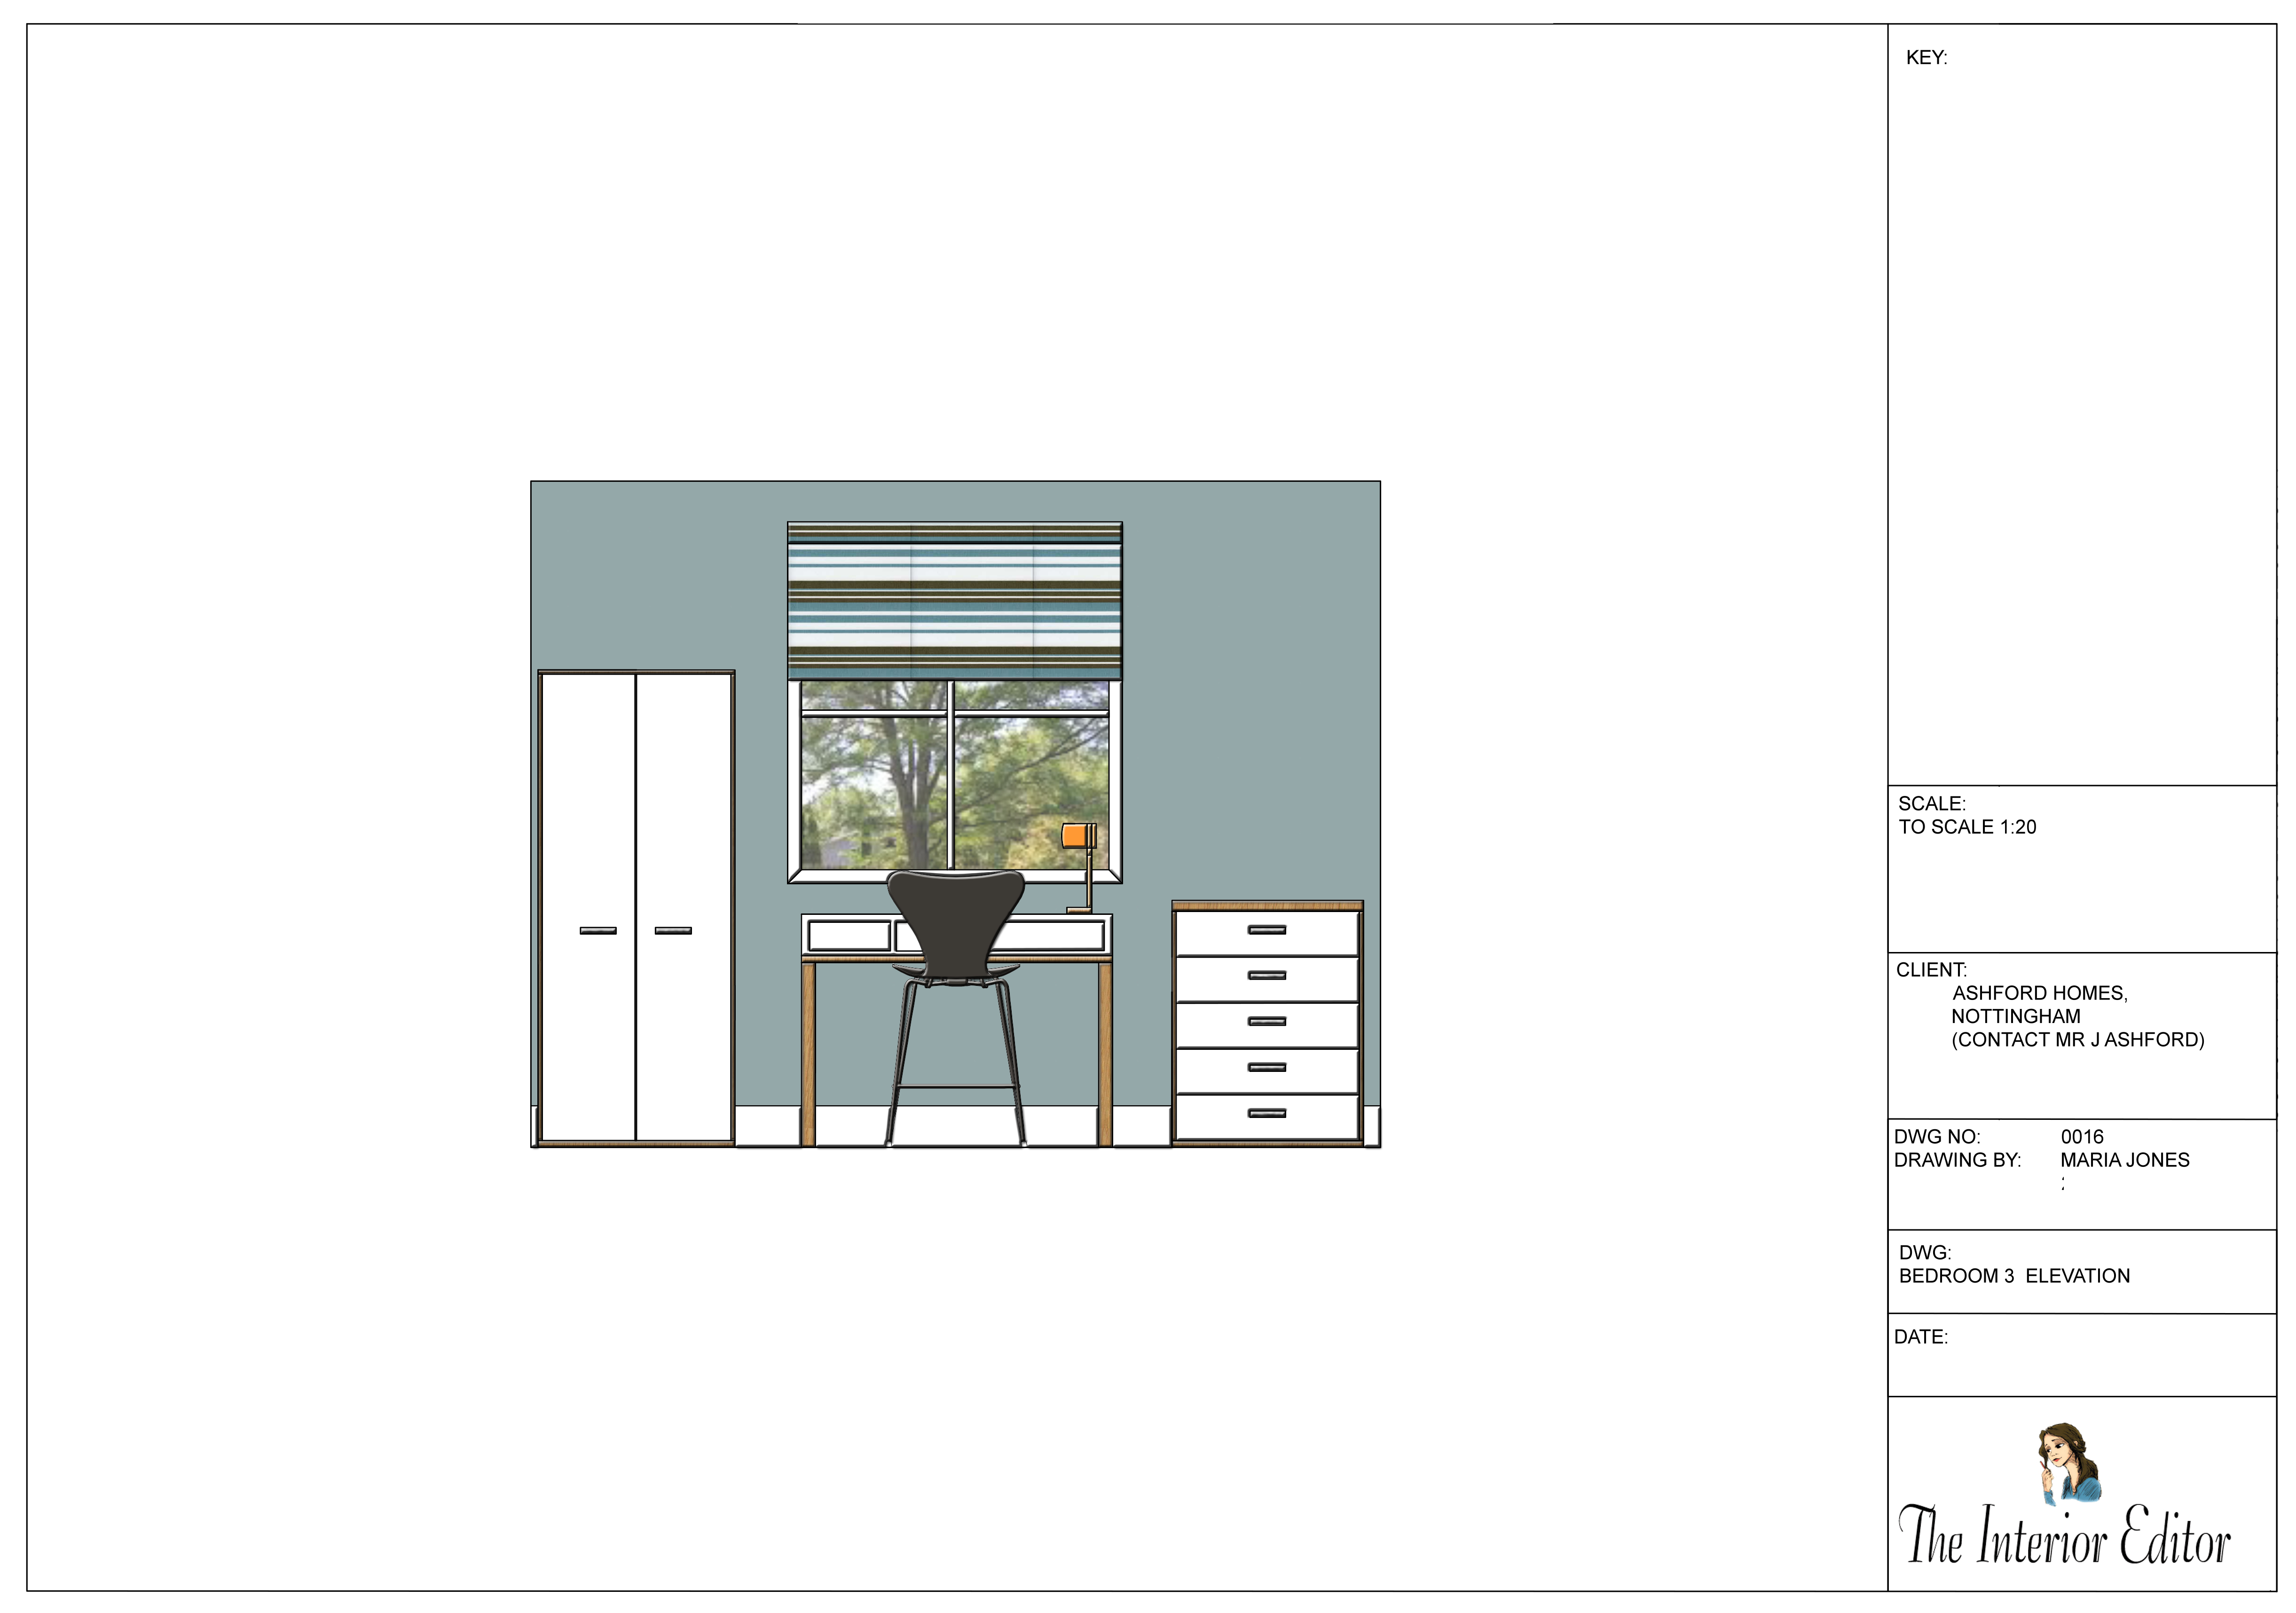 AutoCad Drawings, Such As This Elevation Drawing, Are Essential To The  Design Process An Interior Designer Undertakes.